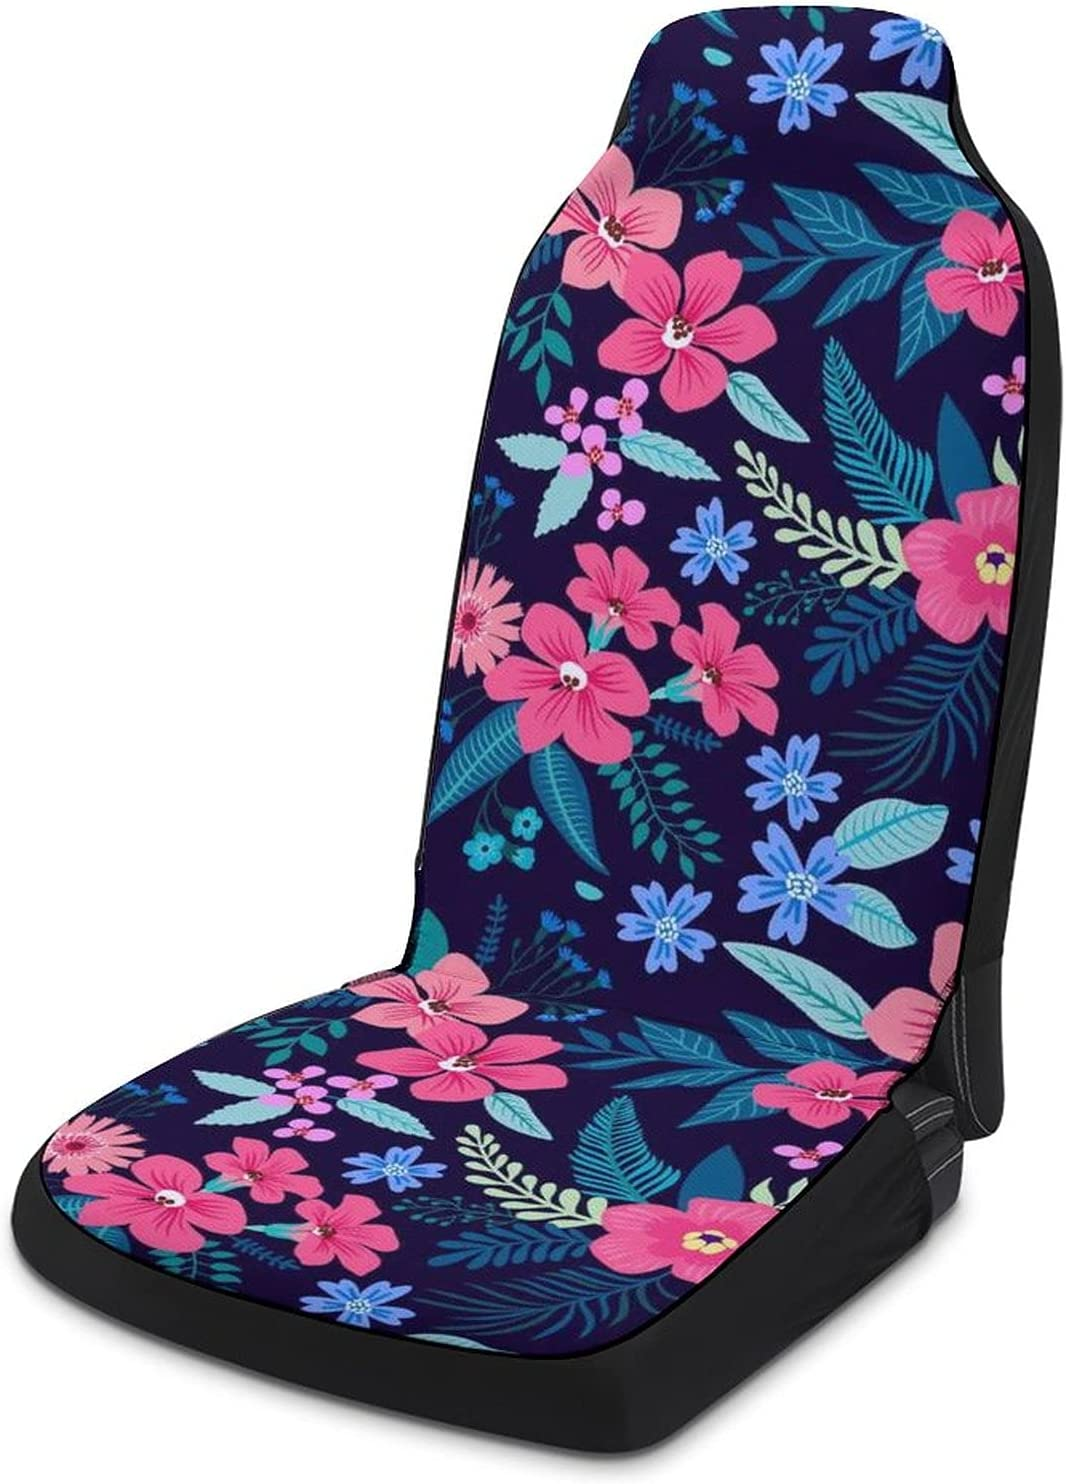 Now on sale Car Seat Covers Boho Designs Universal Fit Pad f Size shopping Protectors